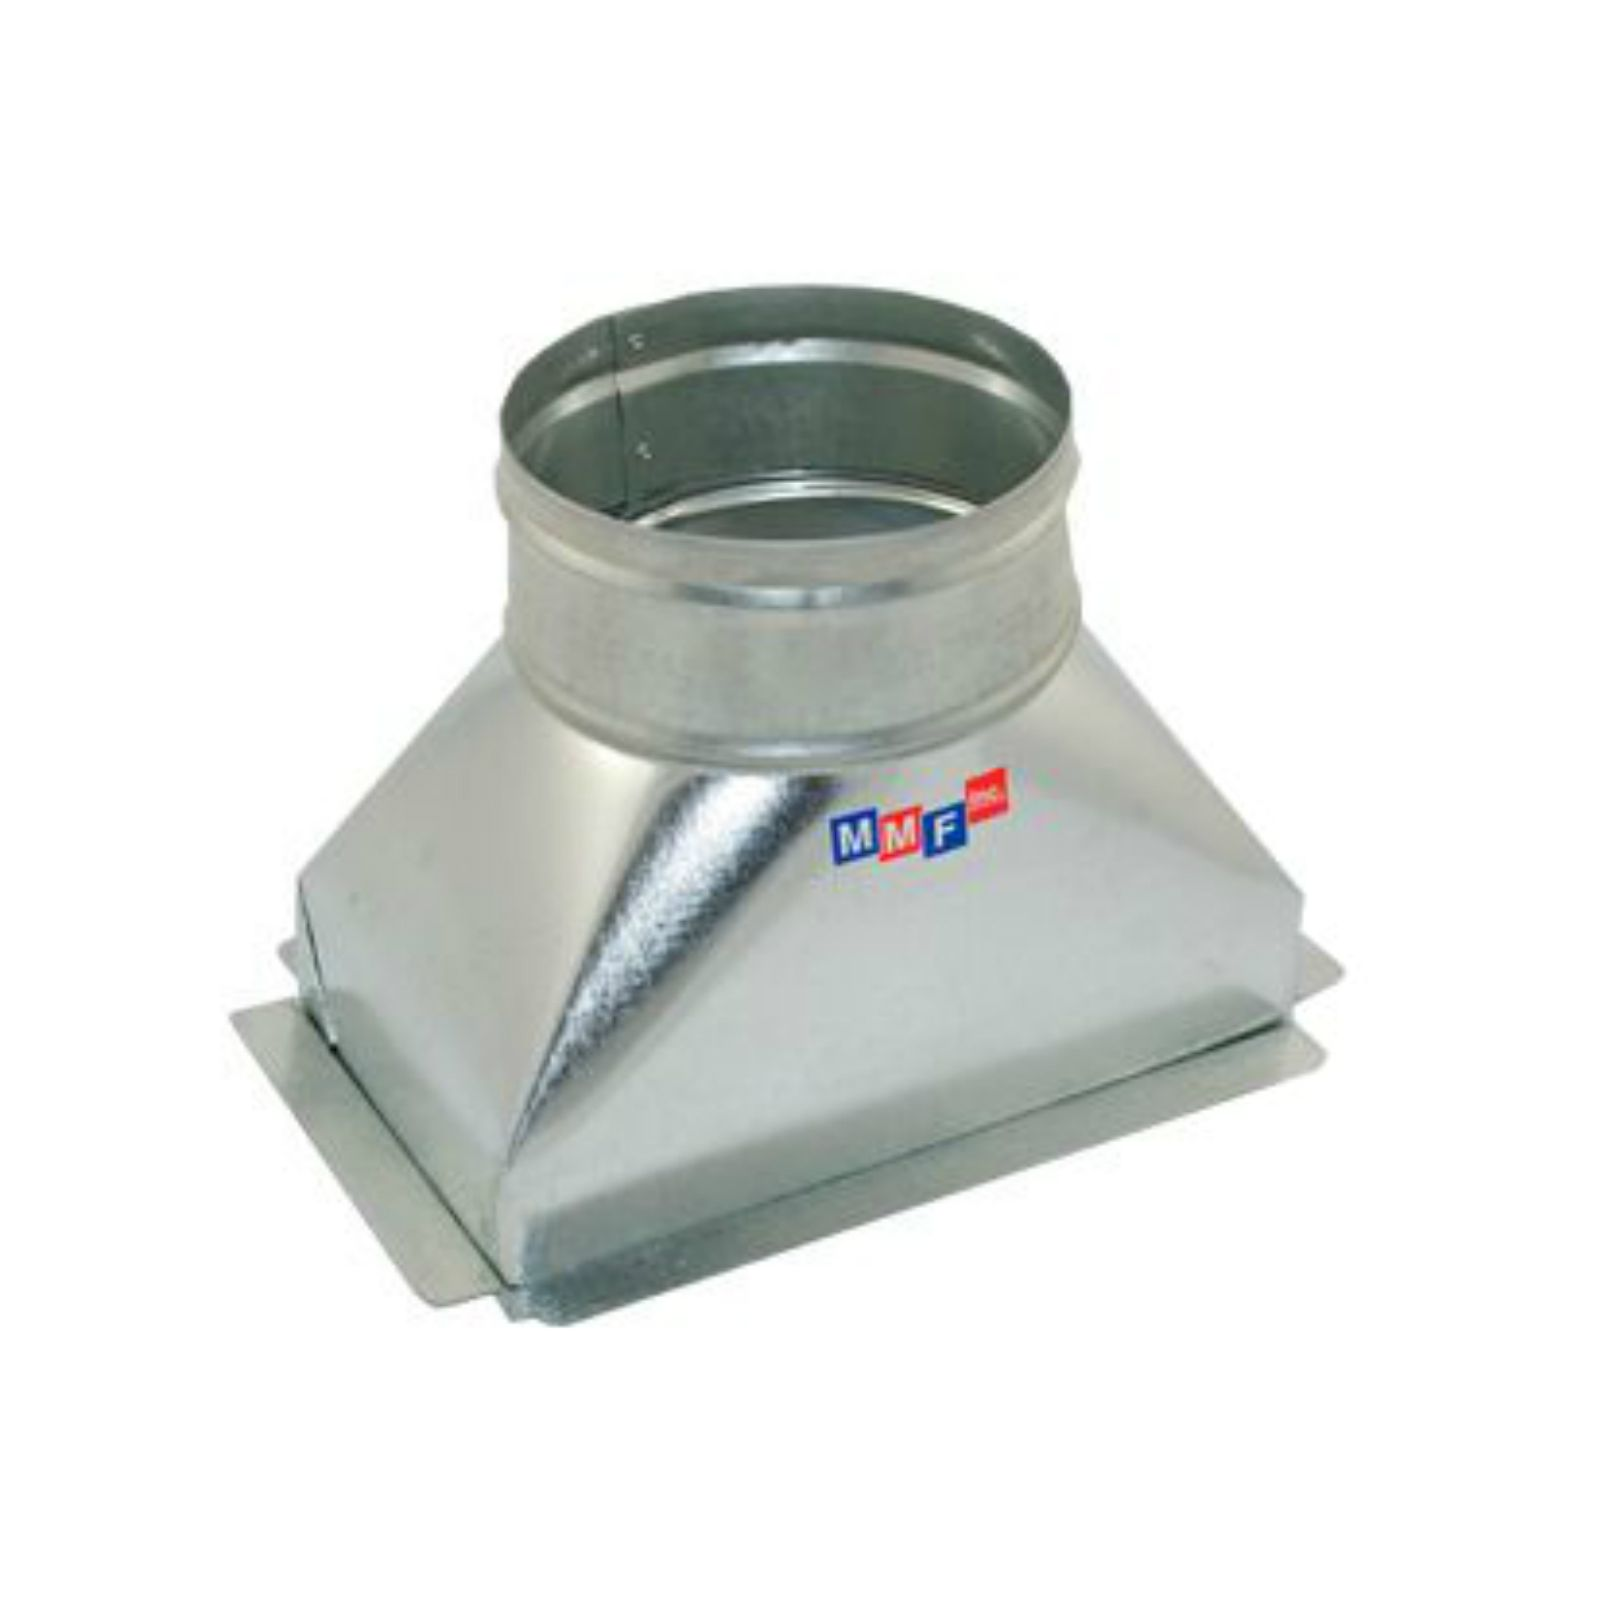 "Modular Metal BTSFG100405E - Sealed Floor Box - 30 Gauge 10"" X 04"" X 05"" Round - With Plaster Ground Flange & Ears"